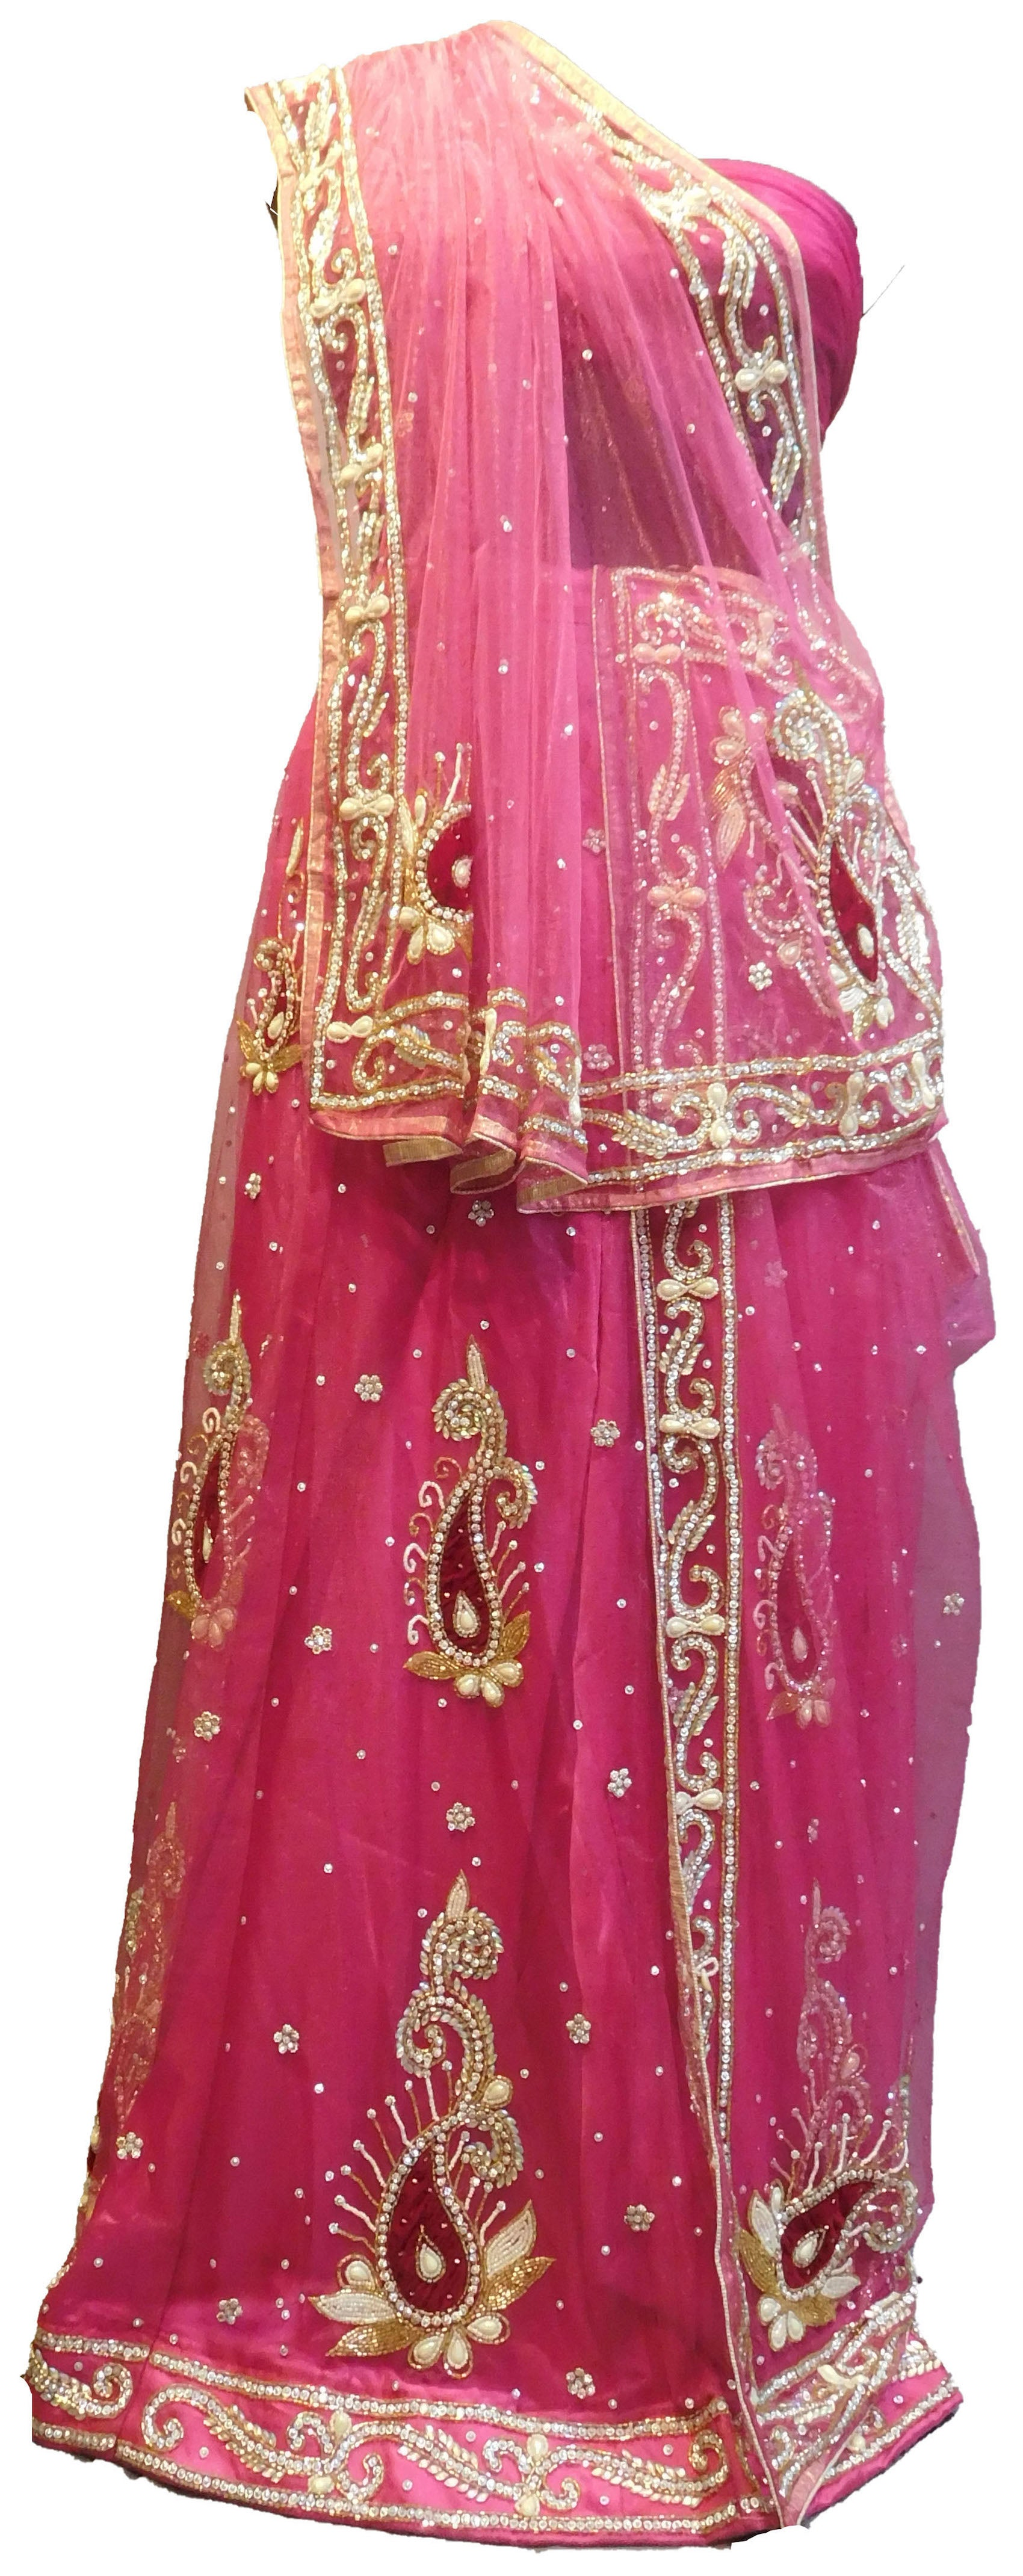 SMSAREE Pink Designer Wedding Partywear Net Stone Beads Cutdana & Pearl Hand Embroidery Work Bridal Lahenga Choli Dupatta SemiStitched LAE626